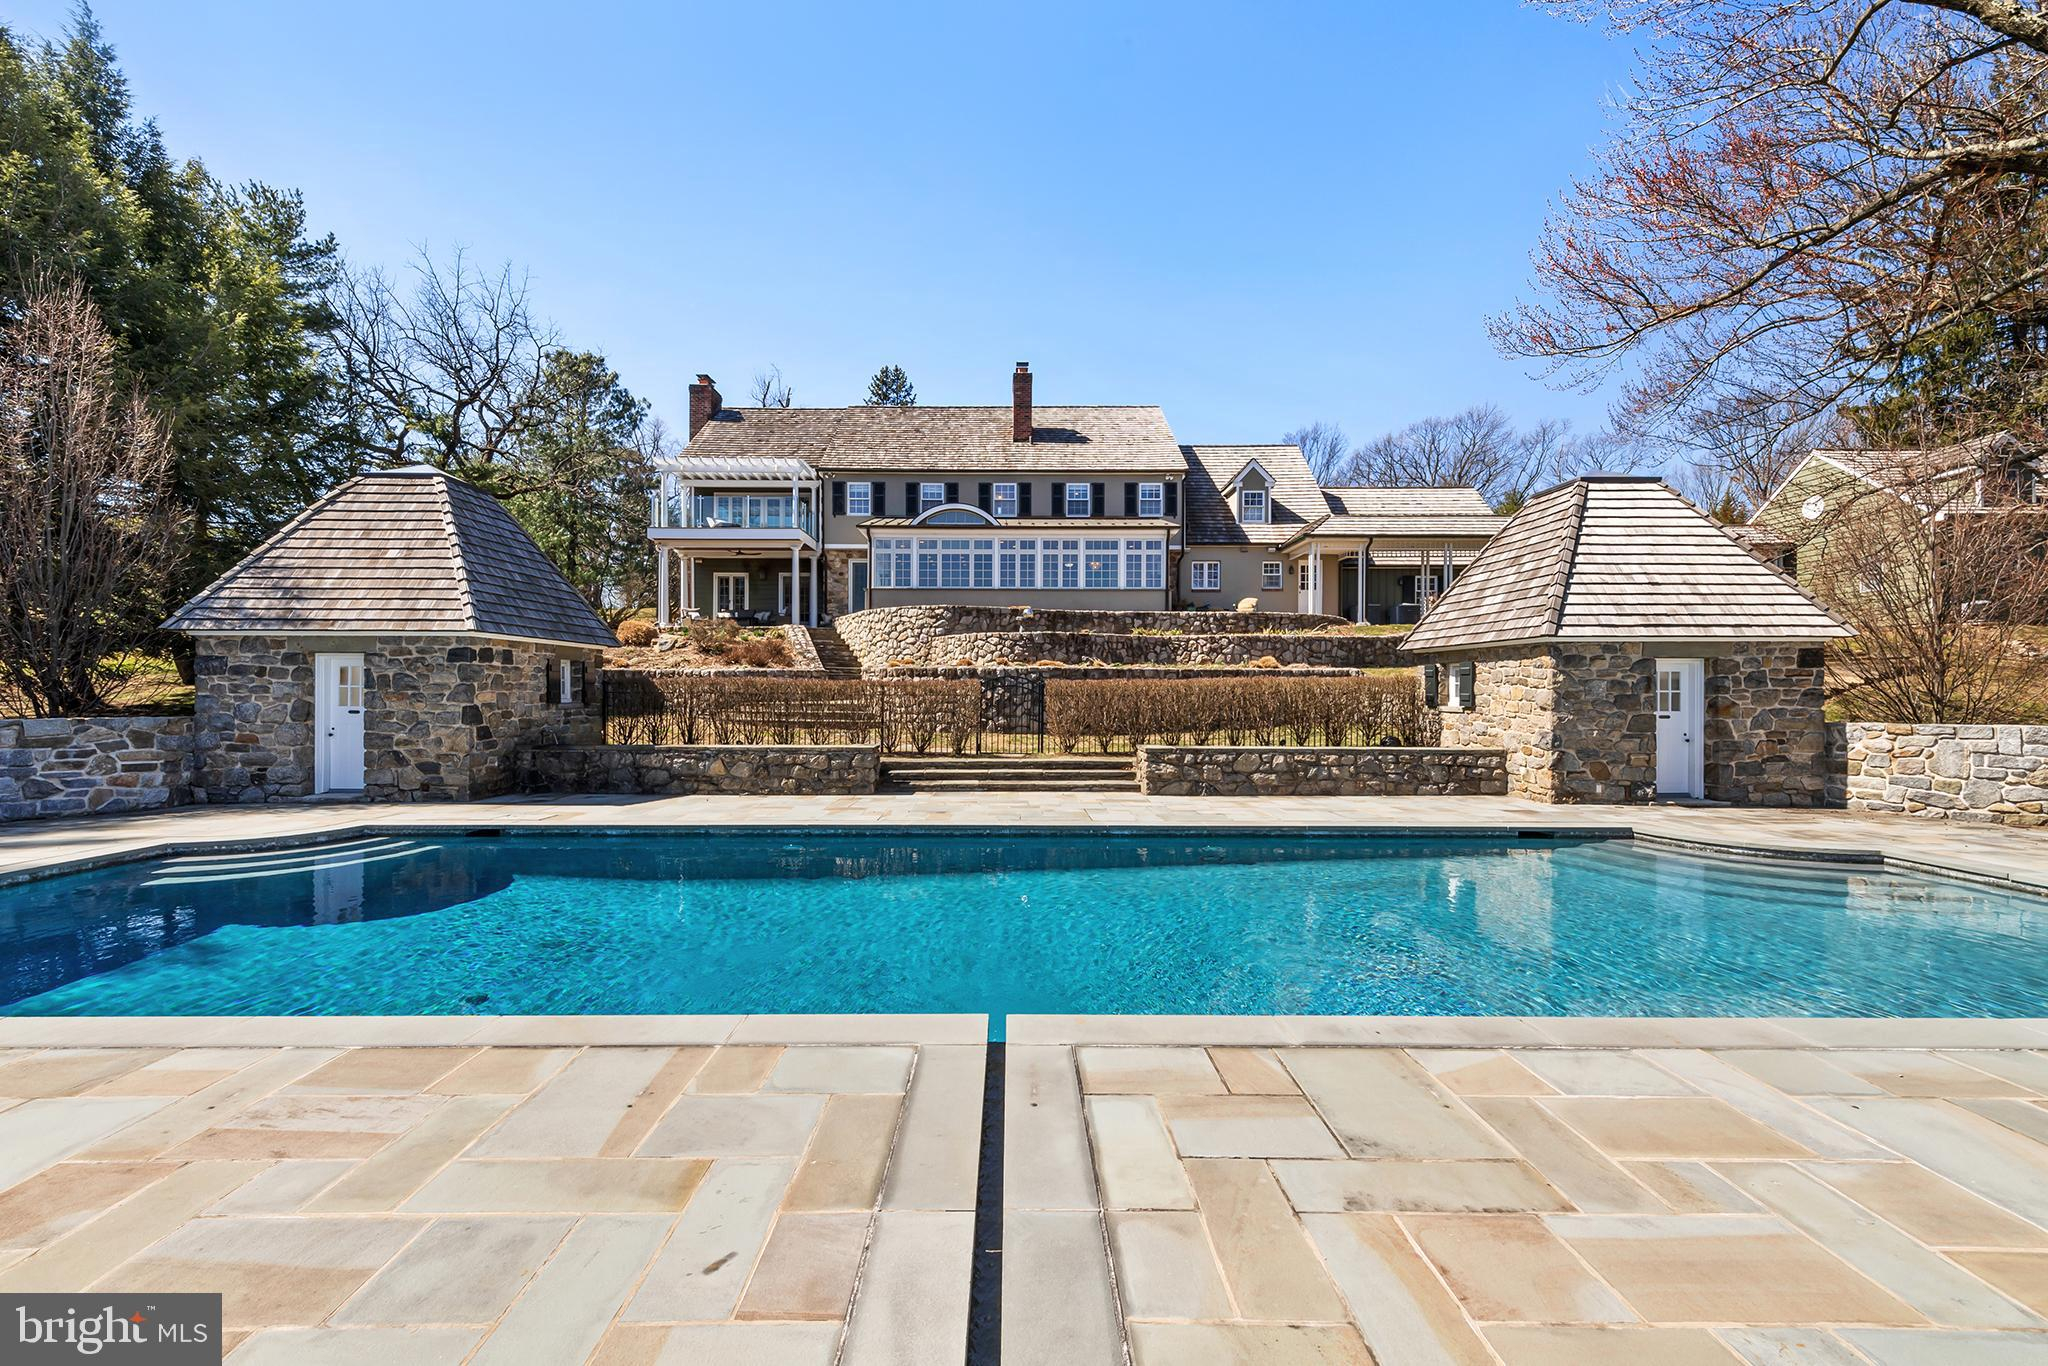 Set on a quiet cul de sac in Gladwyne, this stately five bedroom colonial offers expansive grounds and upgrades of the highest quality. Sprawling across 2.8 acres of land, 1035 Sentry Lane is complete with a renovated outdoor pool and pool house, two balanced stone cabanas that are from the original estate, several tiered gardens, panoramic vistas and resplendent sunrises that you'll never grow tired of.  Enter into a grand foyer showcasing a marble entryway, butterfly staircase, volume ceilings and a skylight window with open beams. There is a light-filled great room surrounded by walls of oversized windows overlooking the home's professionally landscaped acreage. Ideal for entertaining, the open-concept great room flows perfectly into a beautiful breakfast room and chef's kitchen. The designer kitchen boasts custom two-toned cabinetry, a quartz seated center island, two Sub Zero refrigerators, Marvel wine chiller, a Bosch dishwasher, a Bosch double oven, Wolf induction range and stainless steel hood surrounded by an ornate archway. Just off of the kitchen, there is a formal dining room, mud-room and home-office with built-ins. Additional first floor highlights include access to the attached two-car garage, two powder rooms and a large living room offering a wood burning fireplace and french doors that open to one of the tiered stone raised terraces.  Escape every evening into the lavish primary suite that is located on the second floor. This magnificent bedroom enjoys french doors that open to a terrace with glass railings affording unobstructed views, a fireplace, tray ceiling and a custom-fitted walk-in closet complemented by two wall closets. The marble-appointed primary bath has double vanities, a seamless enclosed stall shower, radiant heated flooring and a private commode with etched glass.   All of the guest bedrooms feature excellent closet space. Bedrooms 2 & 3 enjoy ensuite bathrooms, while bedrooms 4 & 5 share a jack-n-jill bath. Enjoy added recreation space thanks to the fully-finished lower level showcasing a mirrored gym with impact floor and sauna, billiard room, built-in bar, outdoor access and full bath. Sitting above the detached three-car garage, your friends and family will enjoy the spacious and private guest suite complete with a kitchenette. Alternatively, this space is perfectly suited to be an office away from the office.  The 5 car garages afford ample parking space for all your cars.  This residence has everything you could want plus more!  Adjacent to Sid Thayer Trail and Riverbend Environmental Center, 1035 Sentry Lane is located in a highly coveted section of Gladwyne. Easy access to Center City, excellent schools, lovely parks, golf courses and clubs.